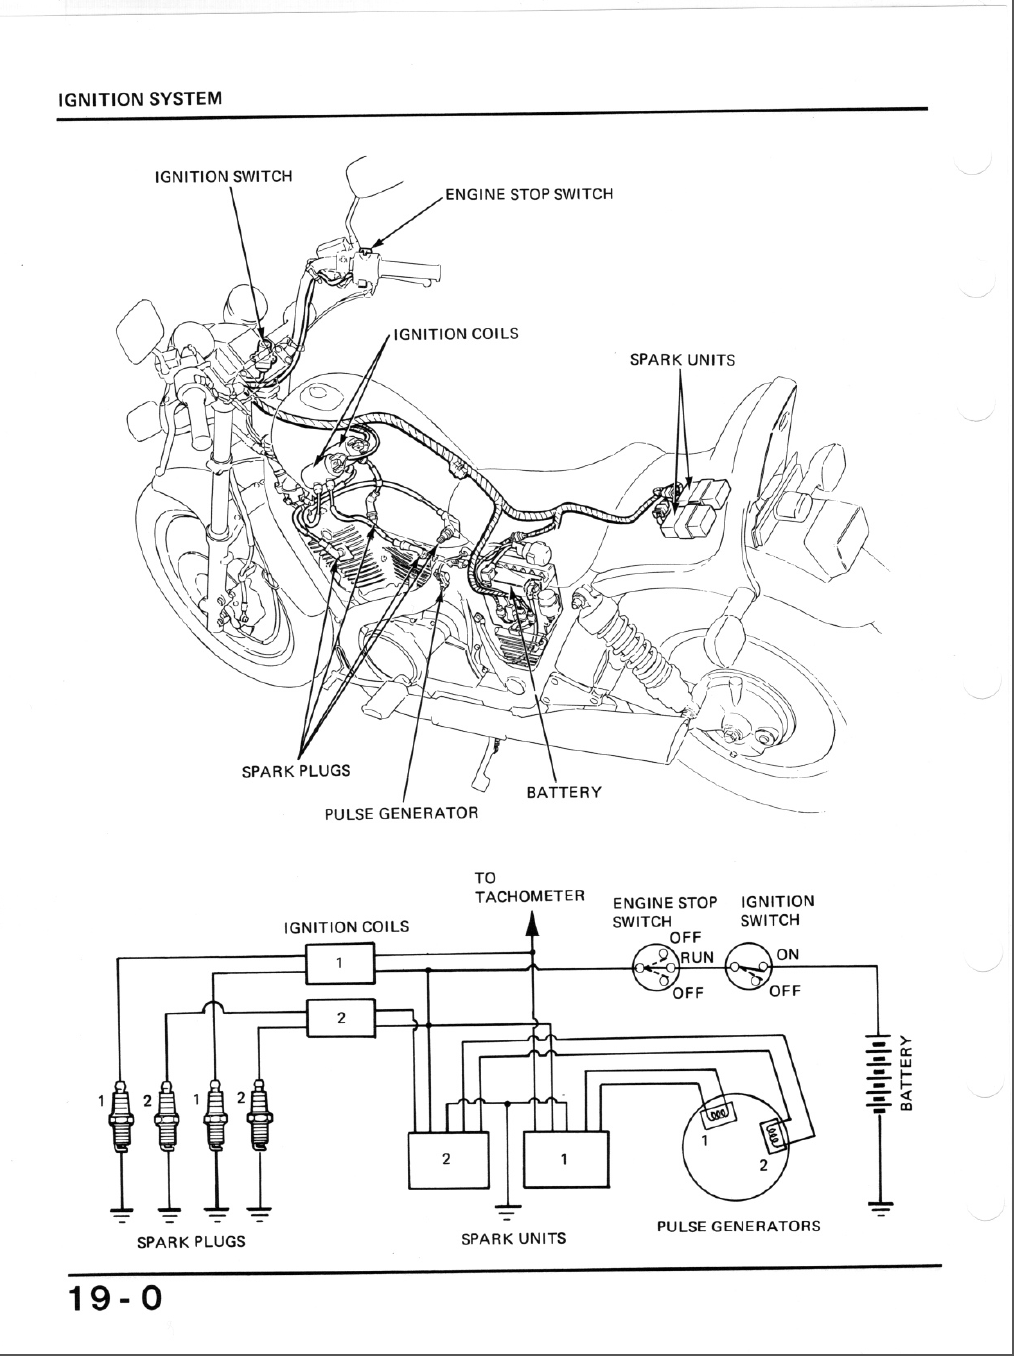 9267d1409799693 1984 honda shadow 700 ignition system 1984 honda shadow 700 1999 honda shadow 1100 wiring diagram at edmiracle.co